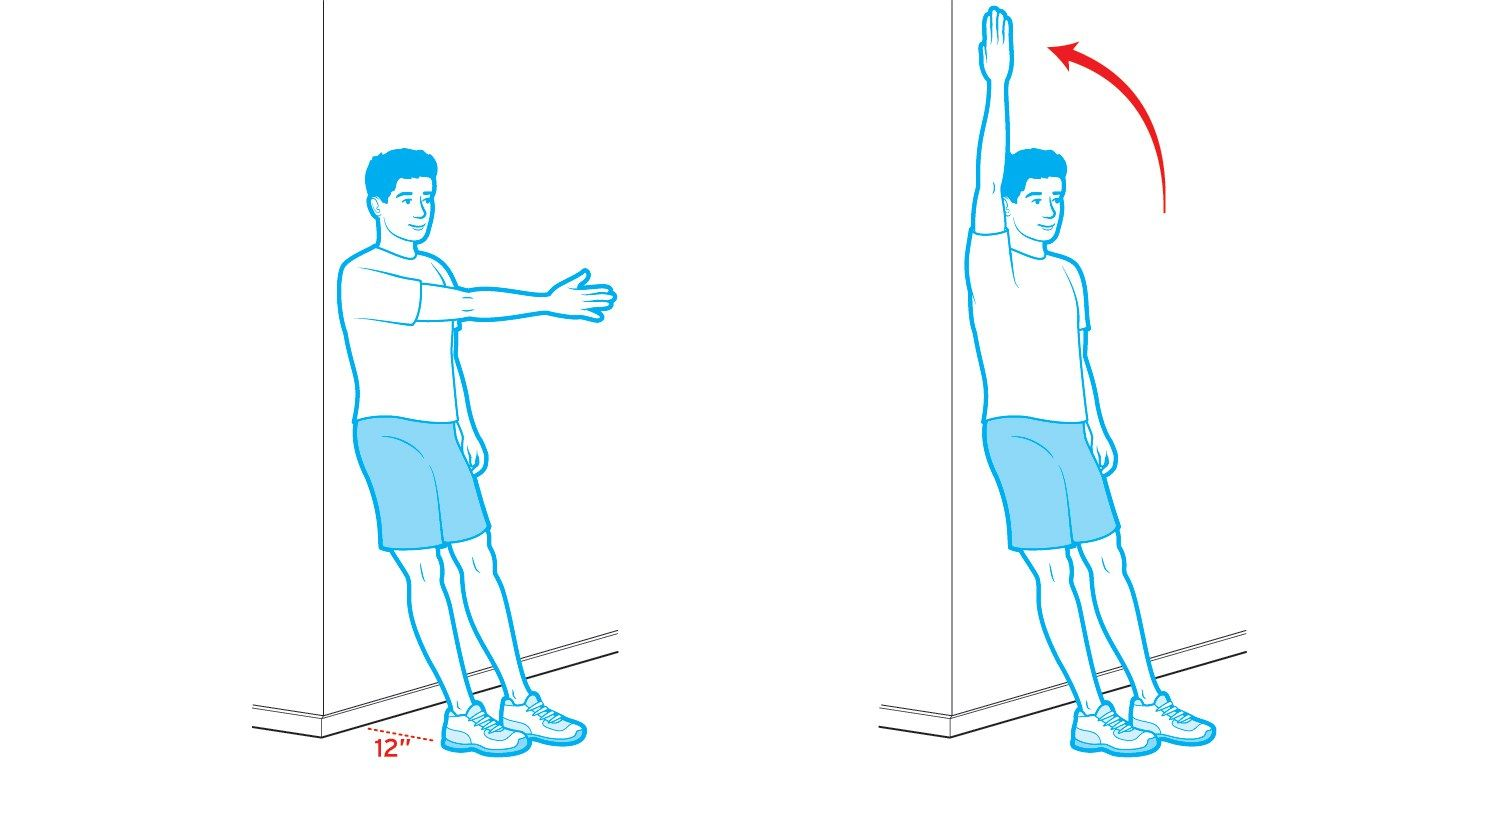 Check your 'golf mobility' with 3 easy tests> http://www.golfdigest.com/story/fitness-friday-check-your-golf-mobility-with-3-easy-tests